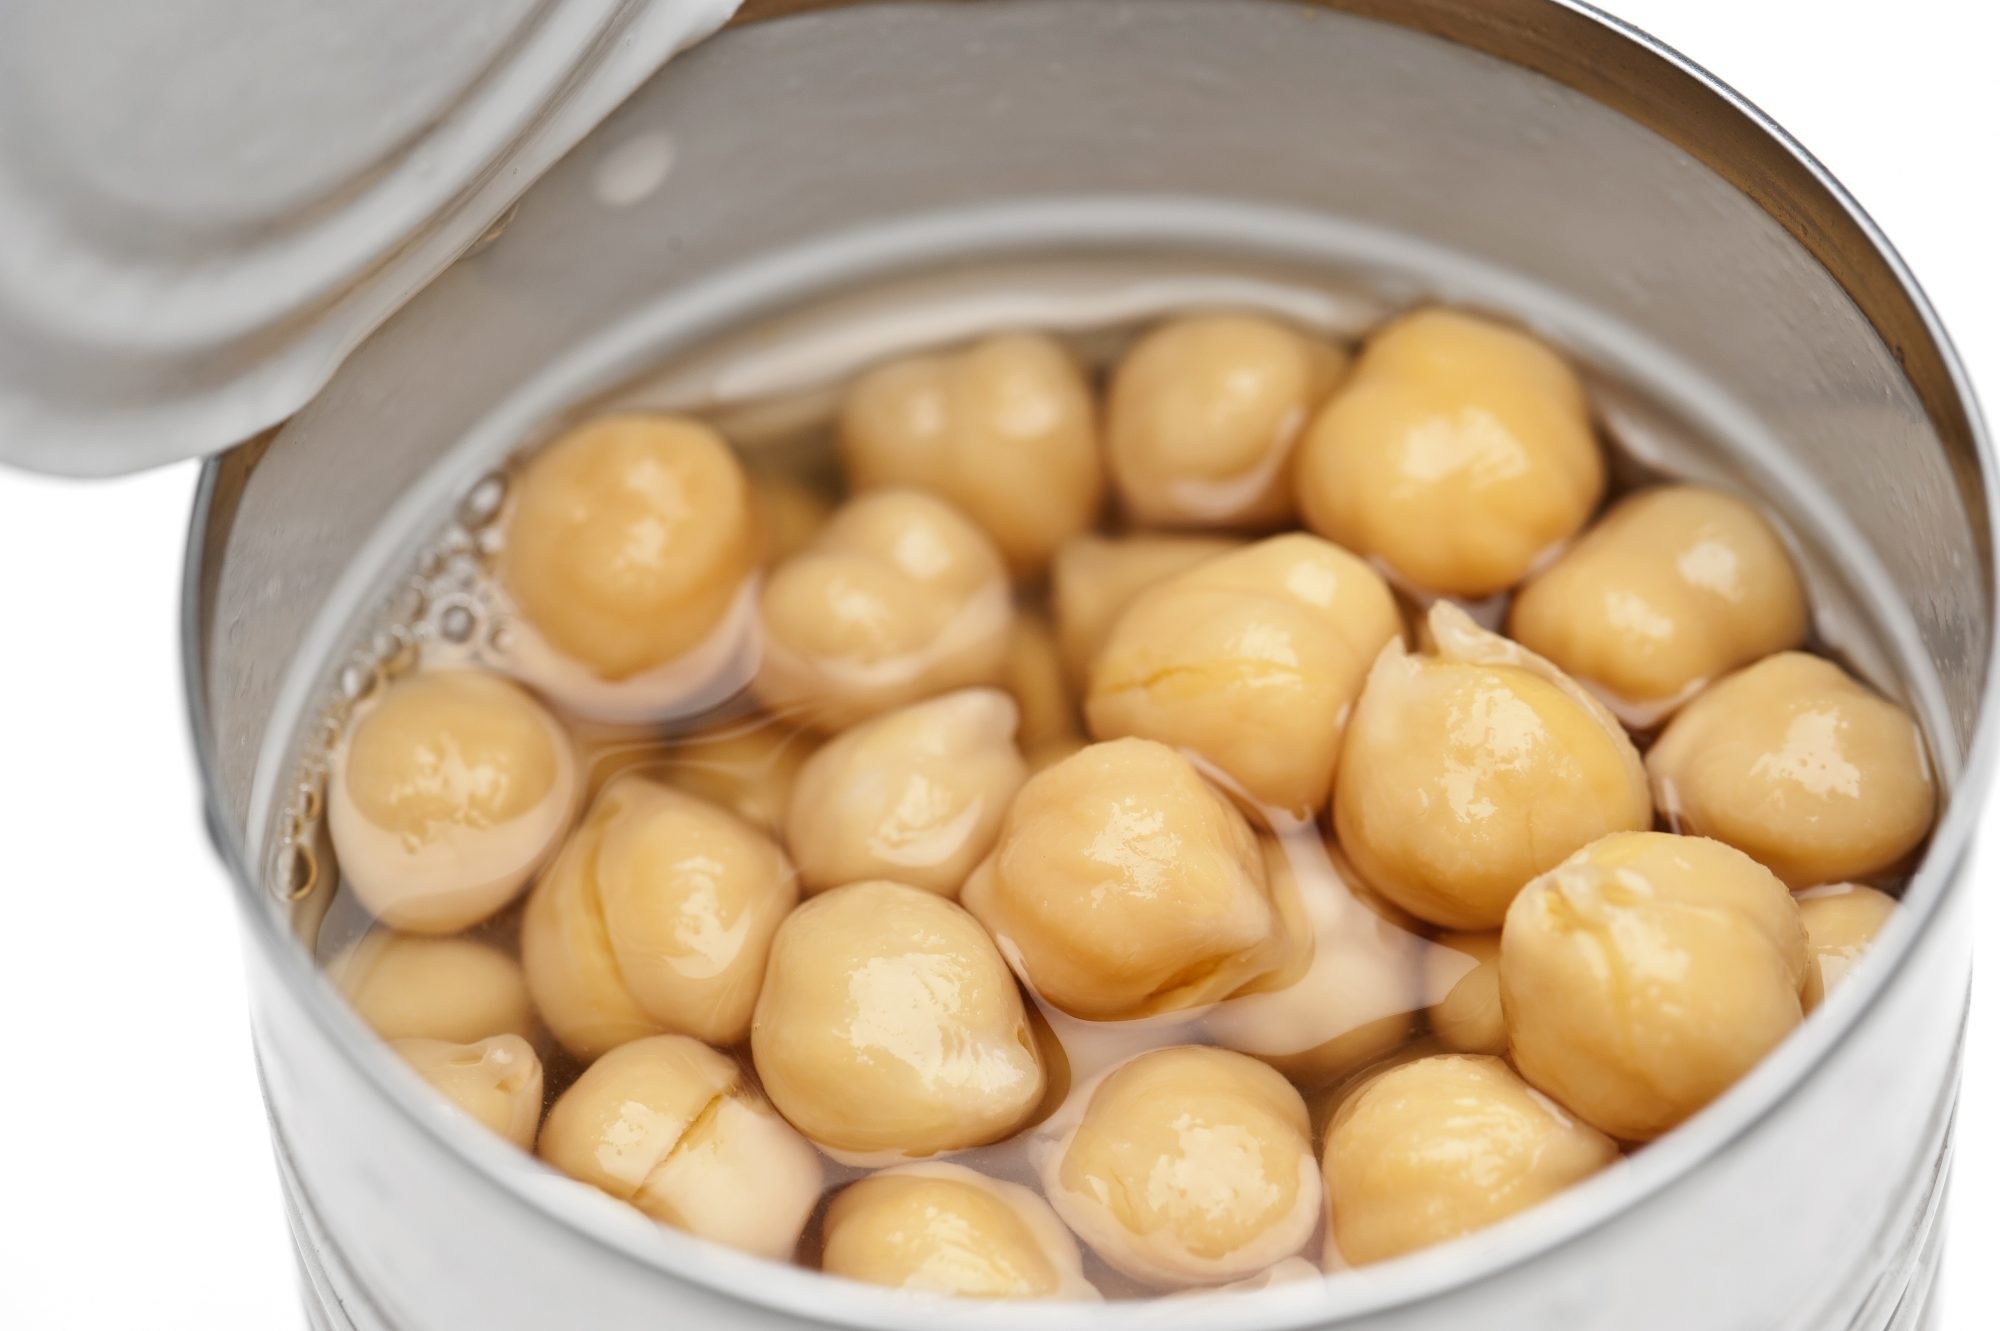 canned chickpeas with liquid